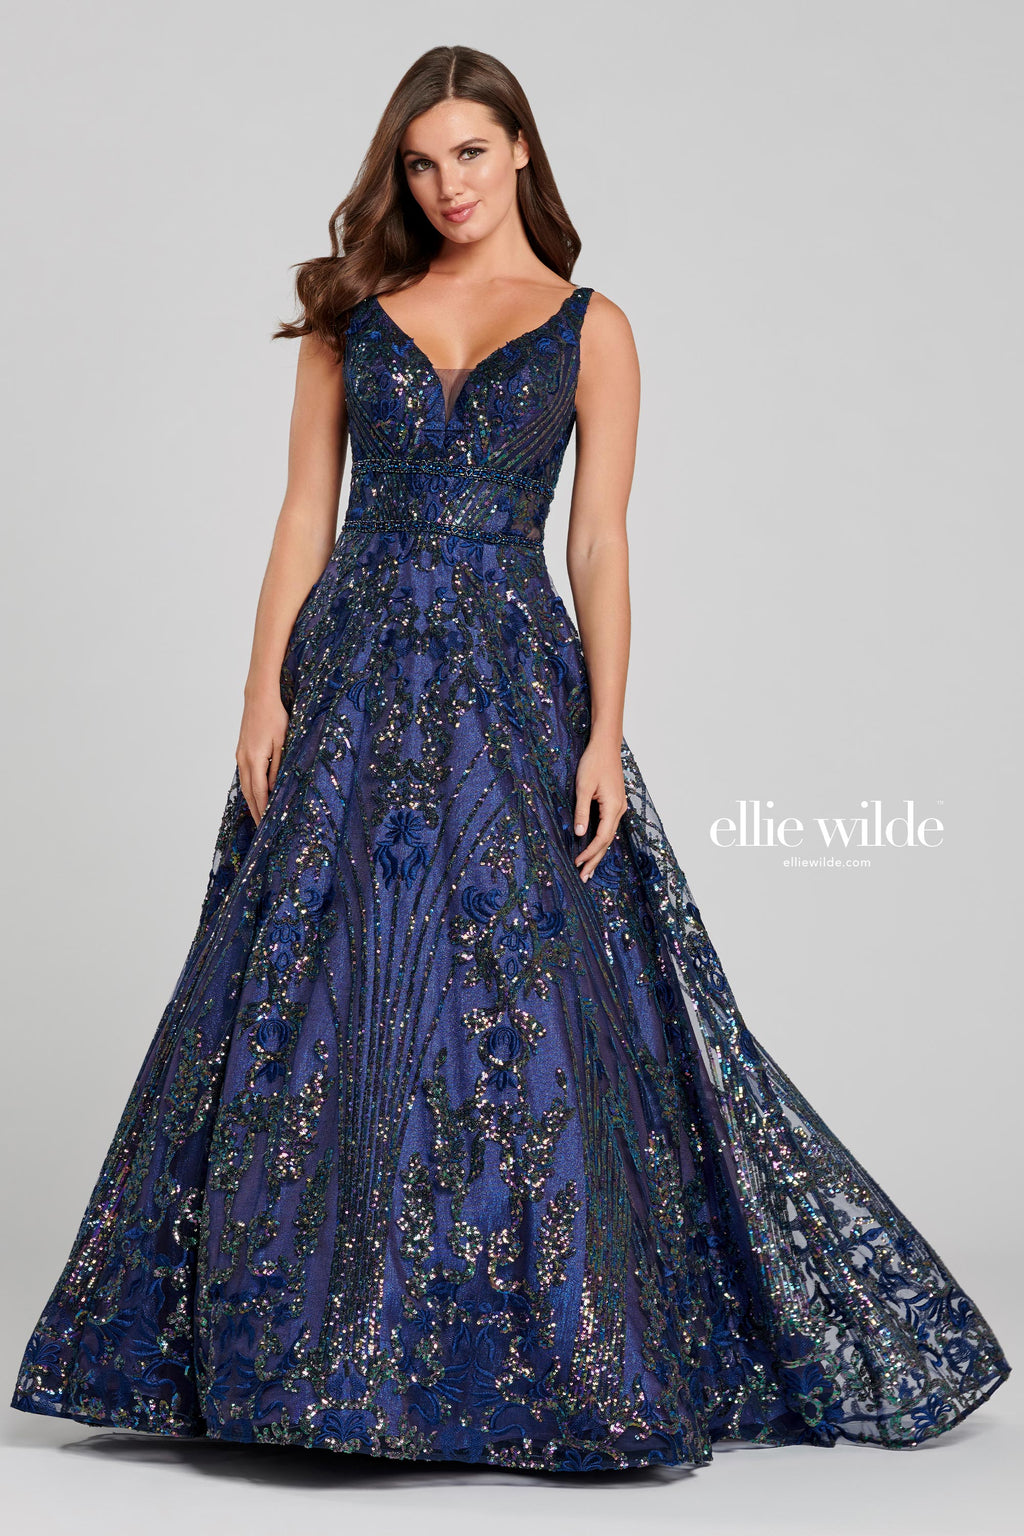 Ellie Wilde Navy Quartz Prom Gown